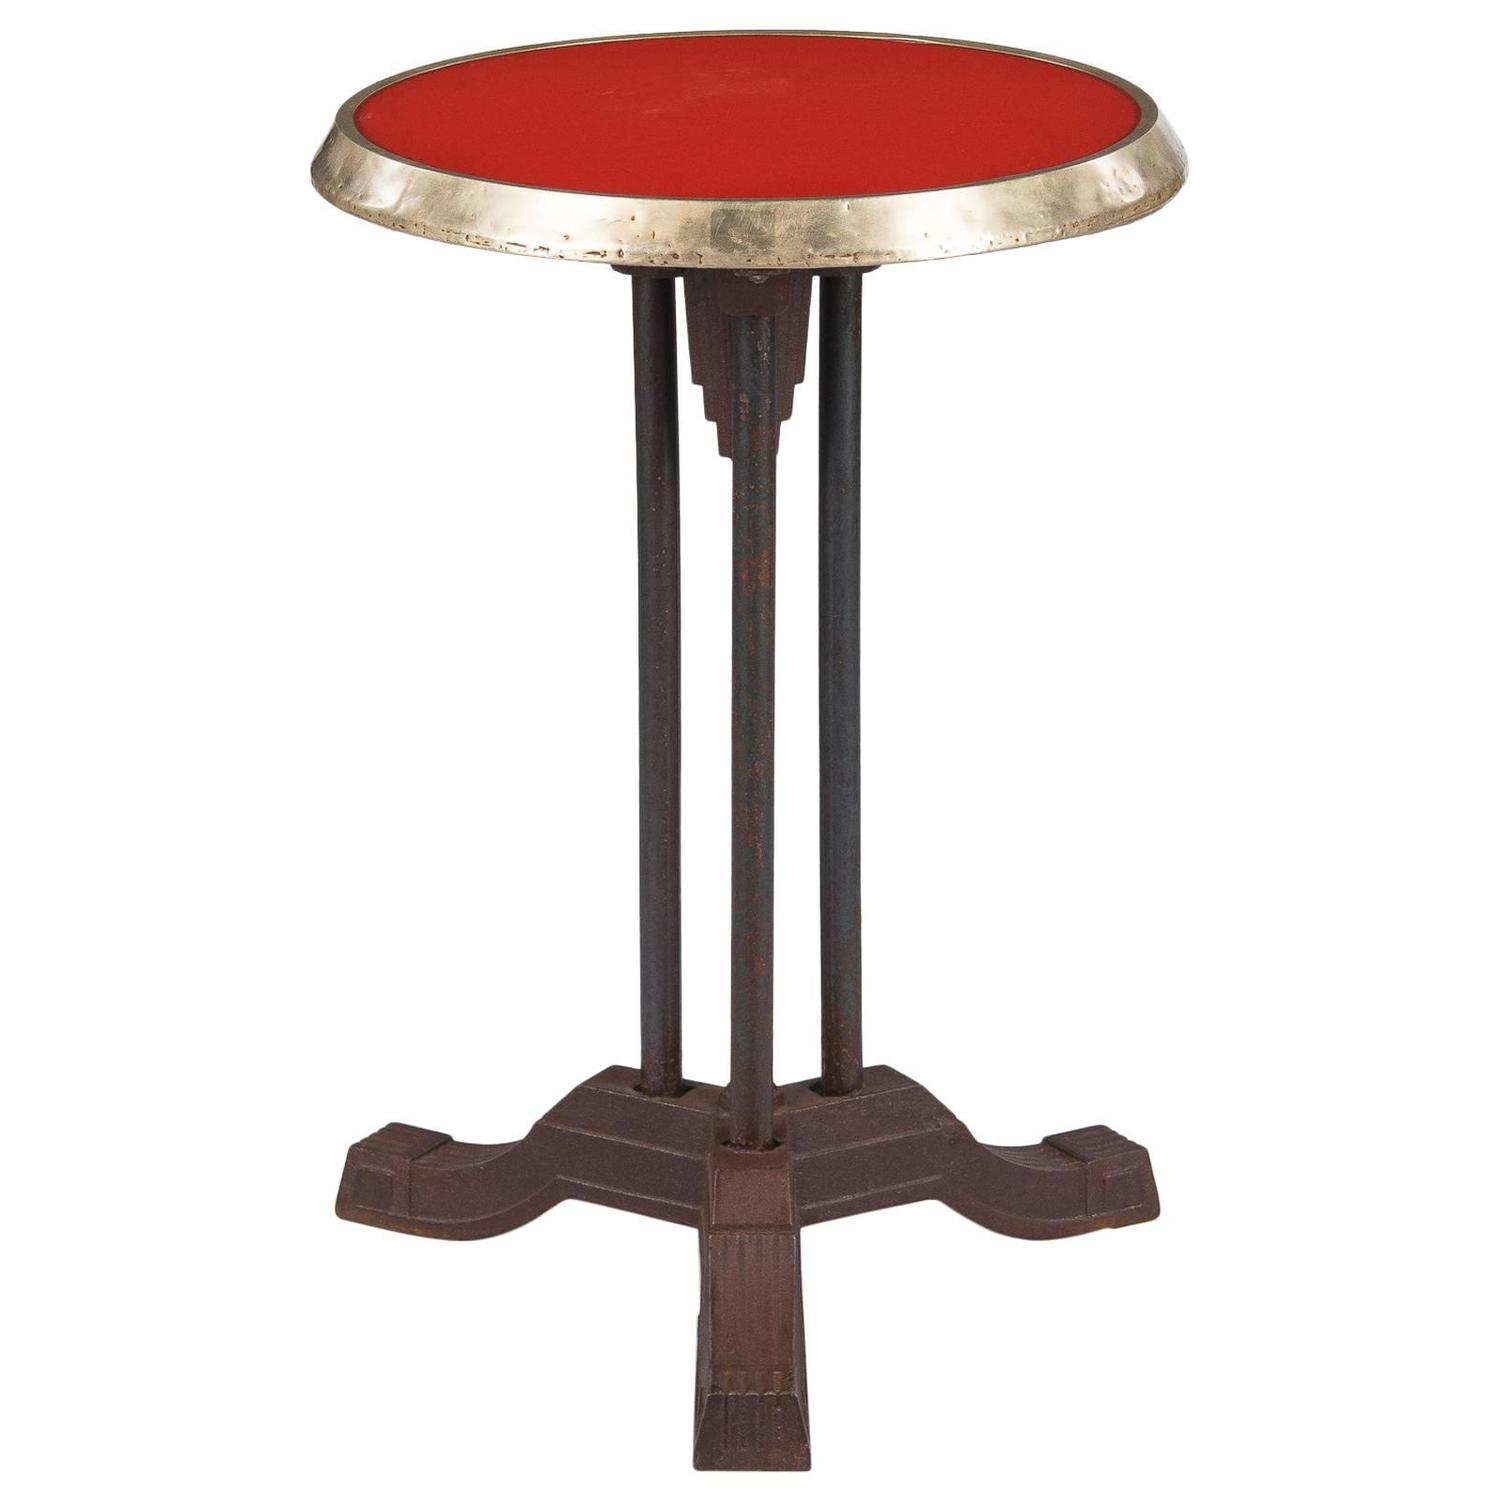 french art deco bistro table with red bakelite top 1930s at 1stdibs. Black Bedroom Furniture Sets. Home Design Ideas